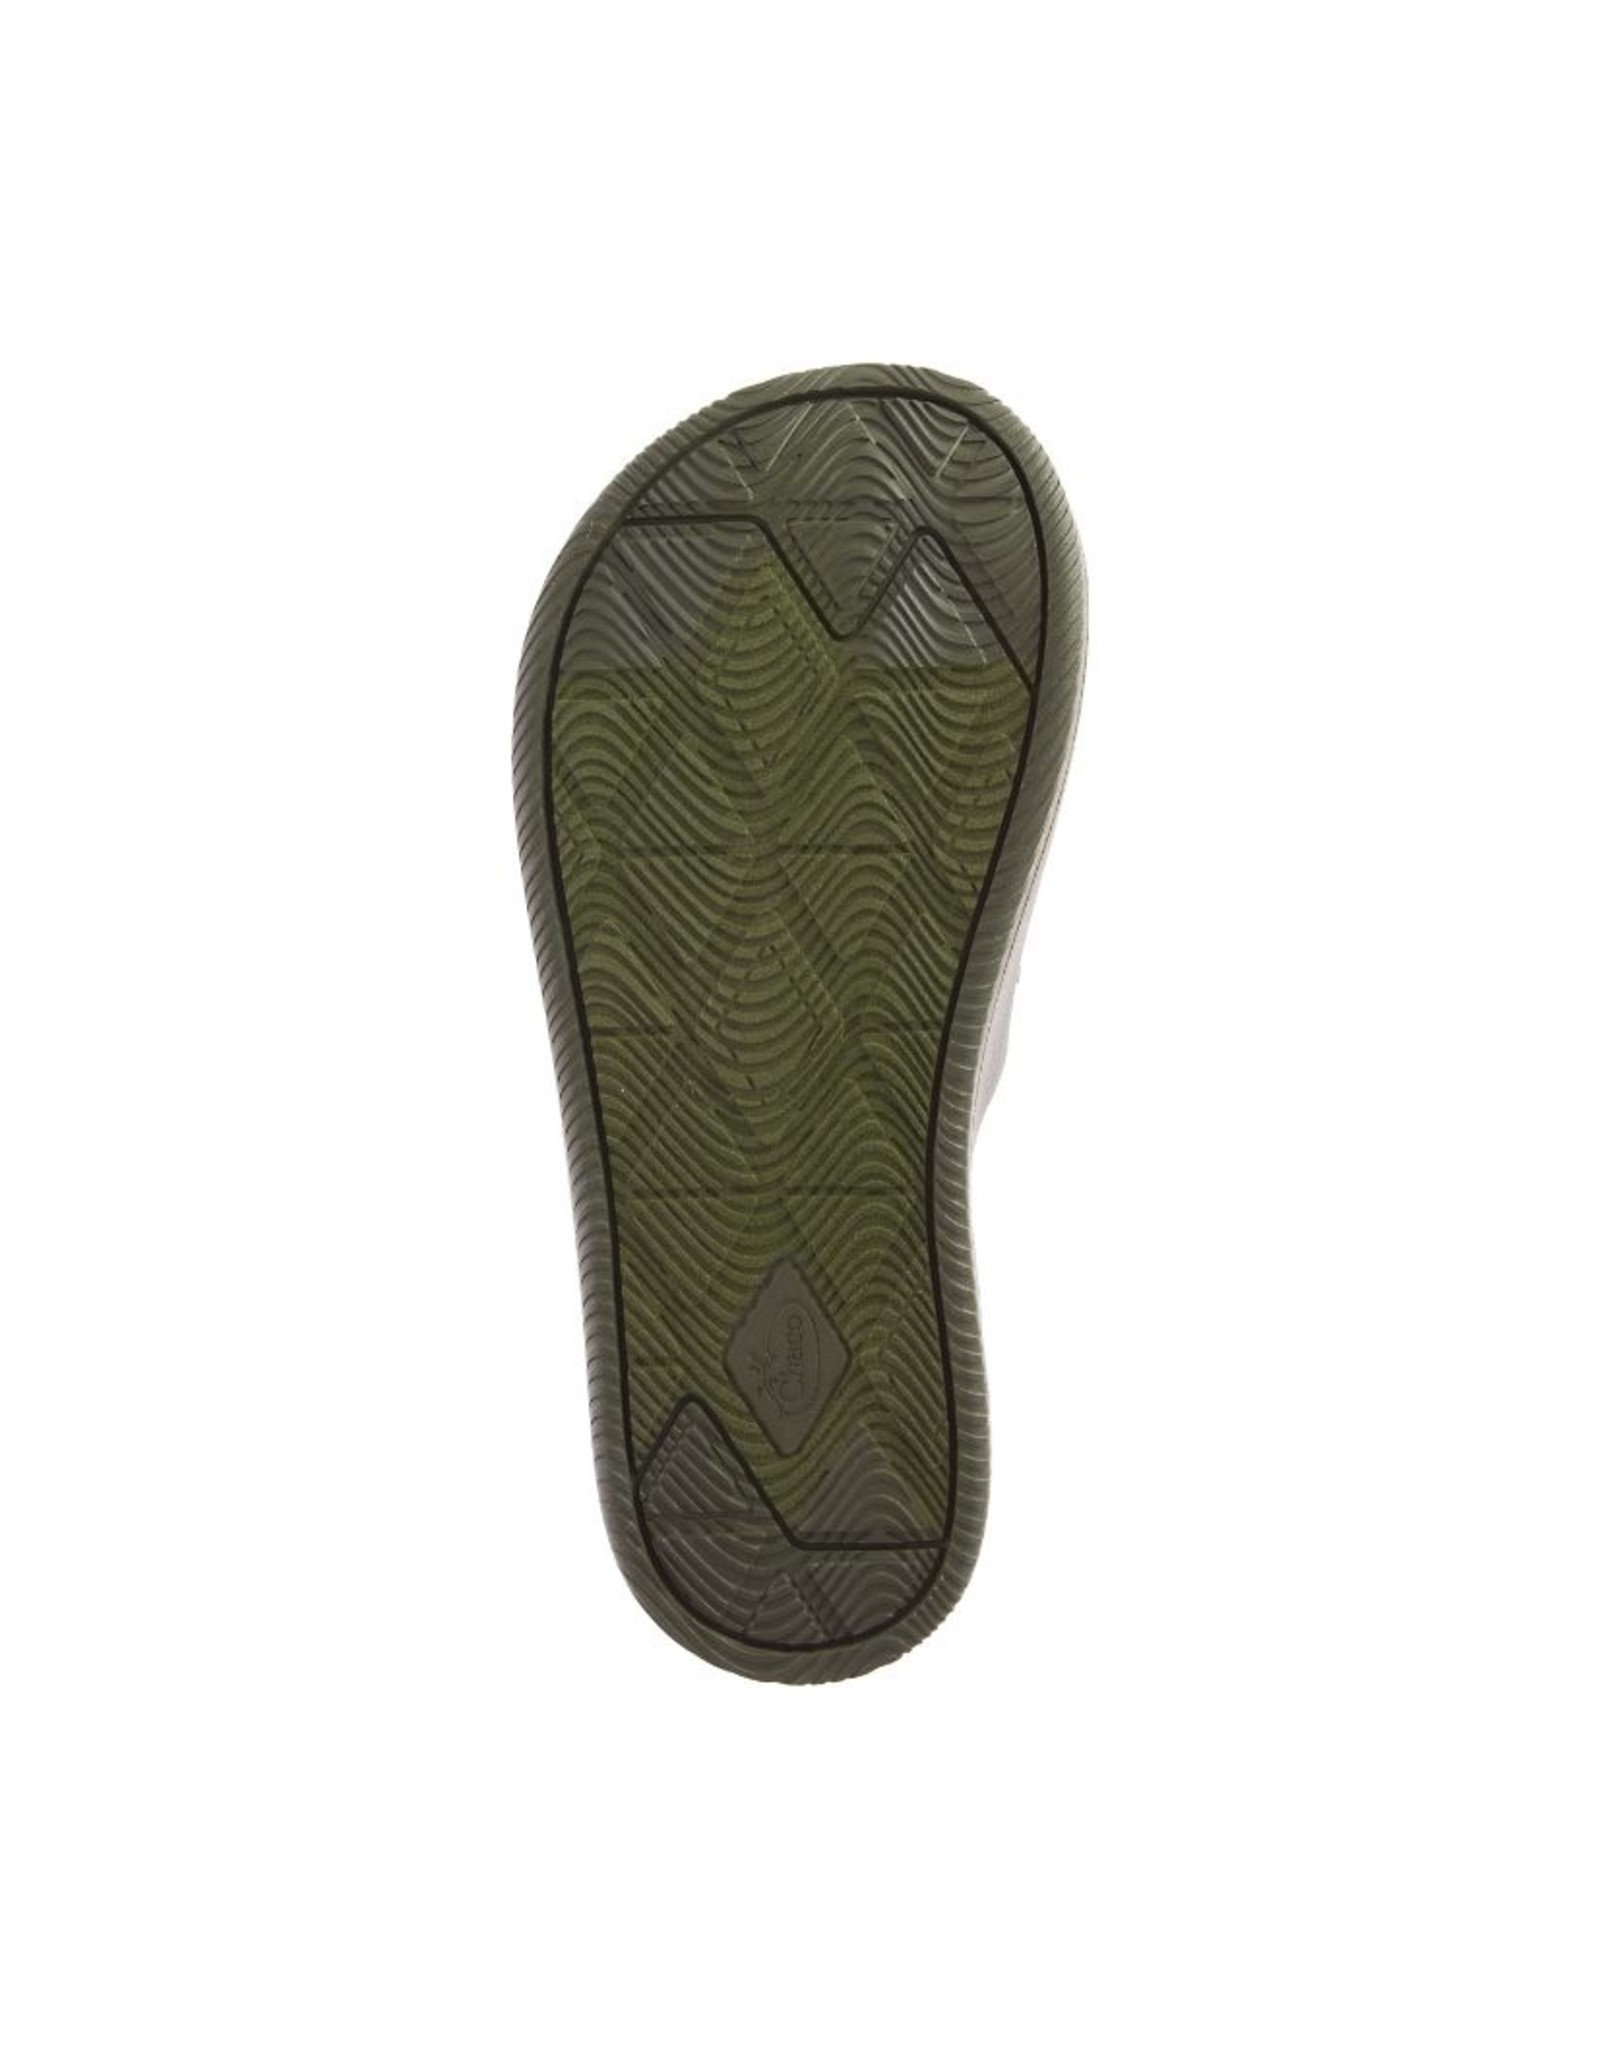 Chaco Chaco Men's Chillos Slide Sandals